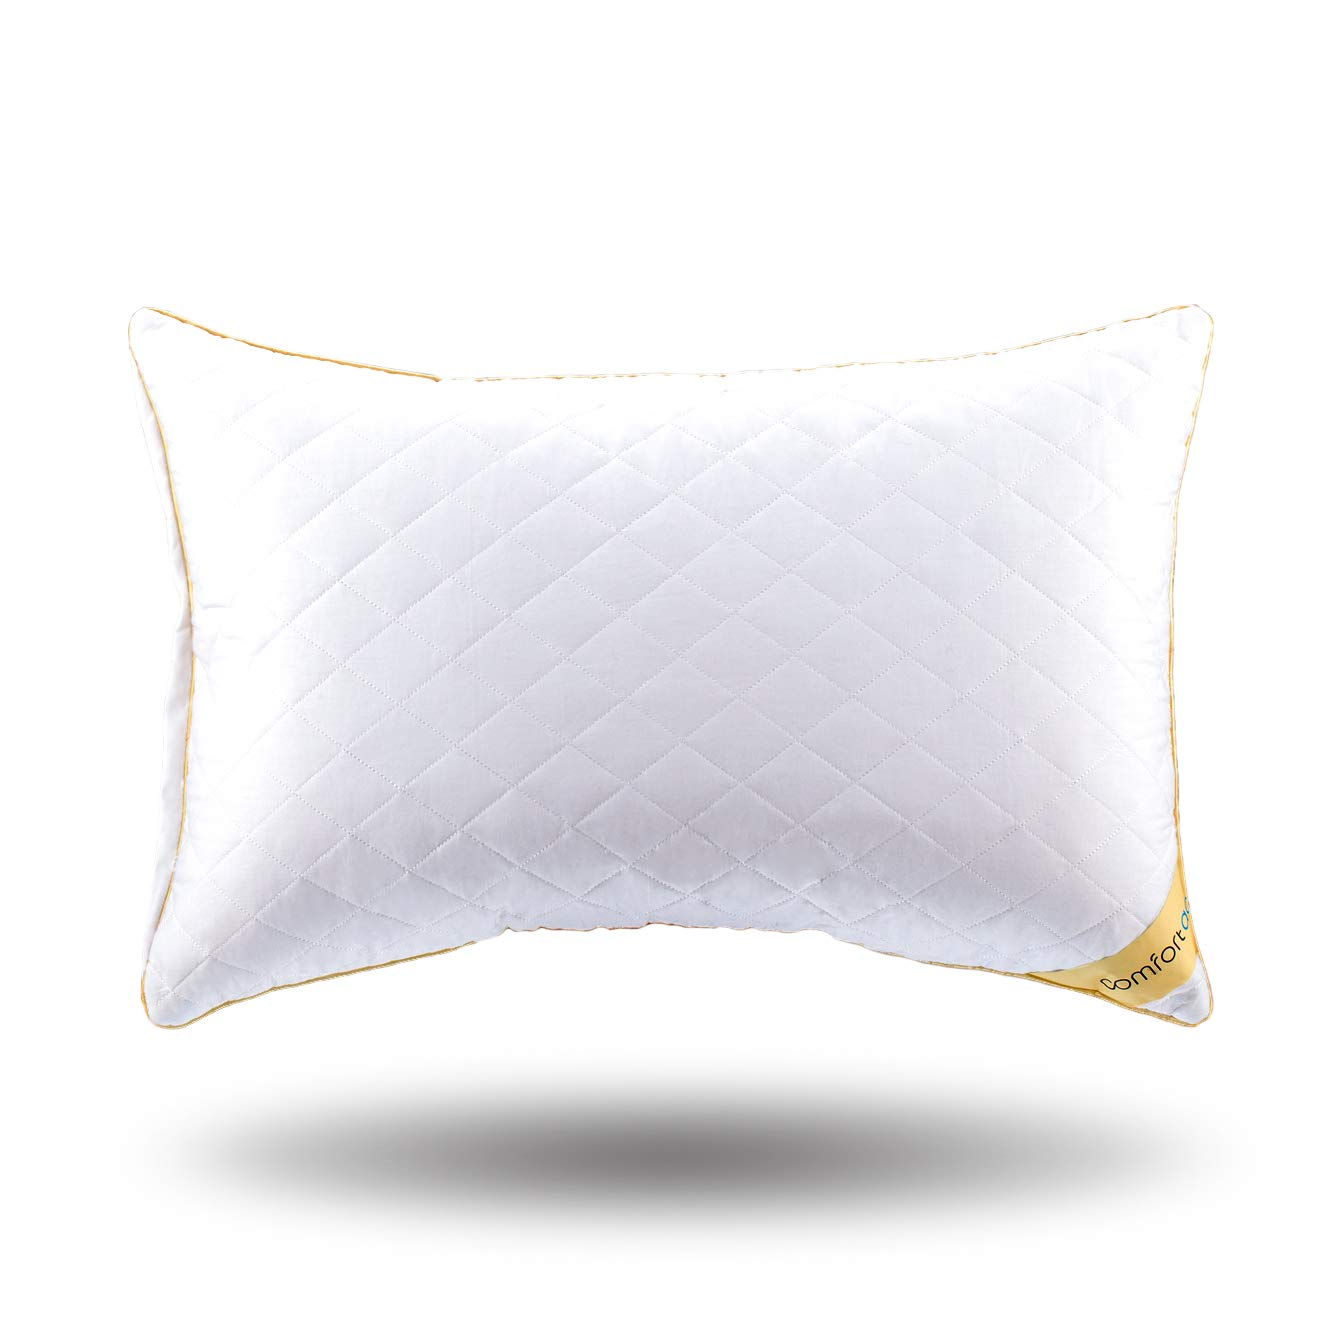 Comfortac Shredded Memory Foam Pillow, Premium Memory Foam Pillow w/ Adjustable Hypoallergenic Gel Infused Memory Foam Fill and Removable Vented 100% Cotton Case - One Pack